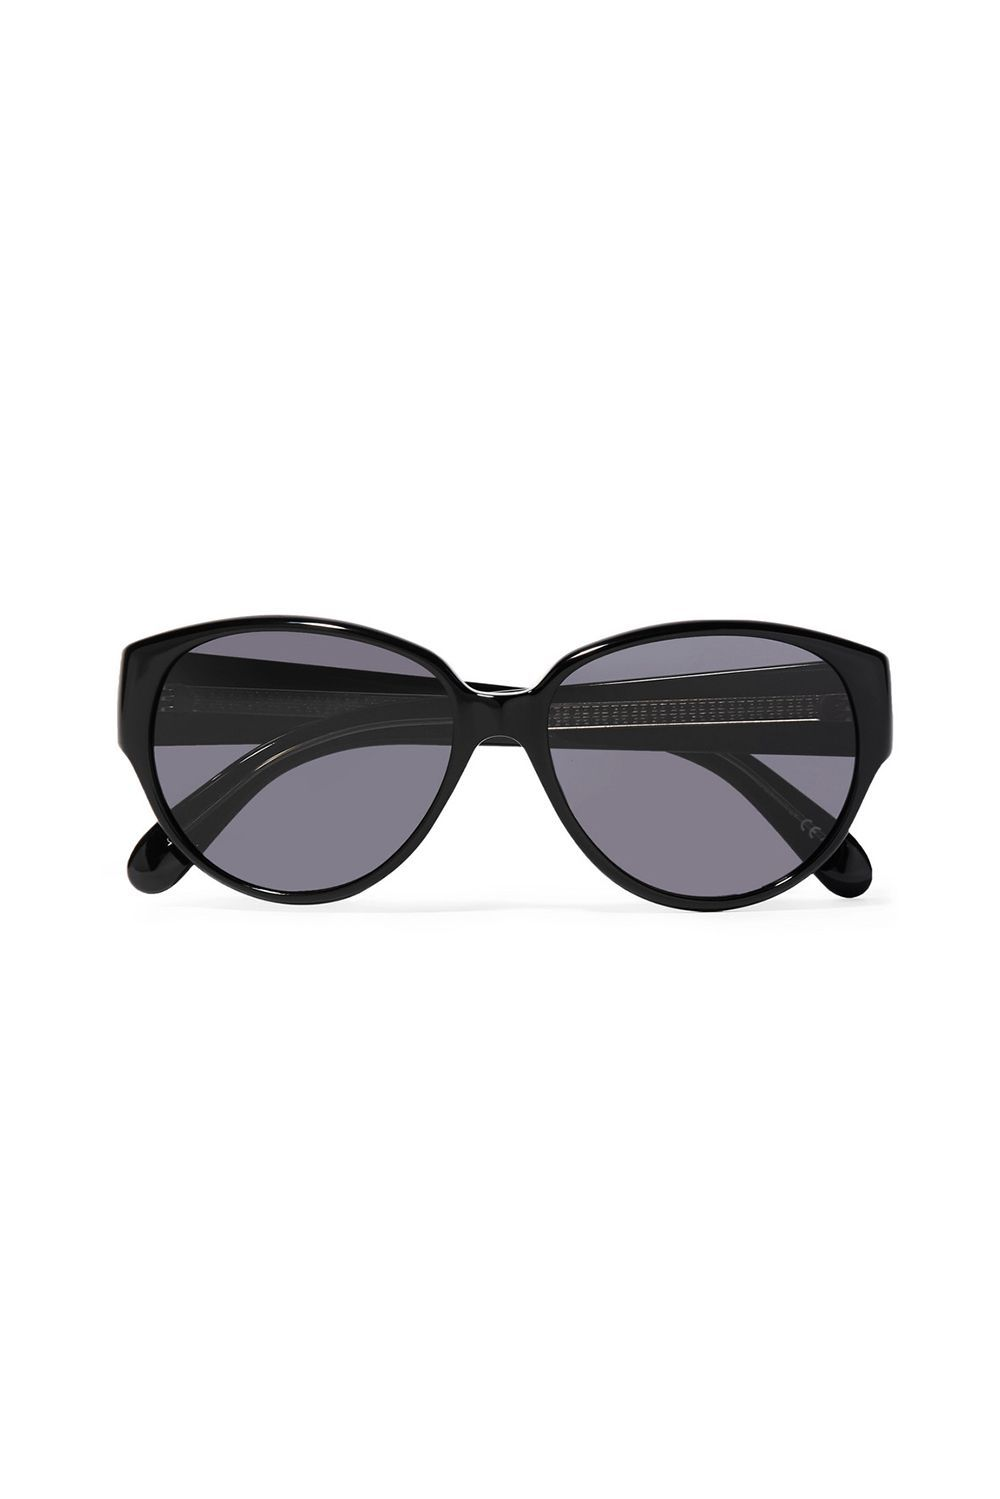 a14e8c8240c7 22 Best Sunglasses for Women 2019 - Cute Sunglasses for Women